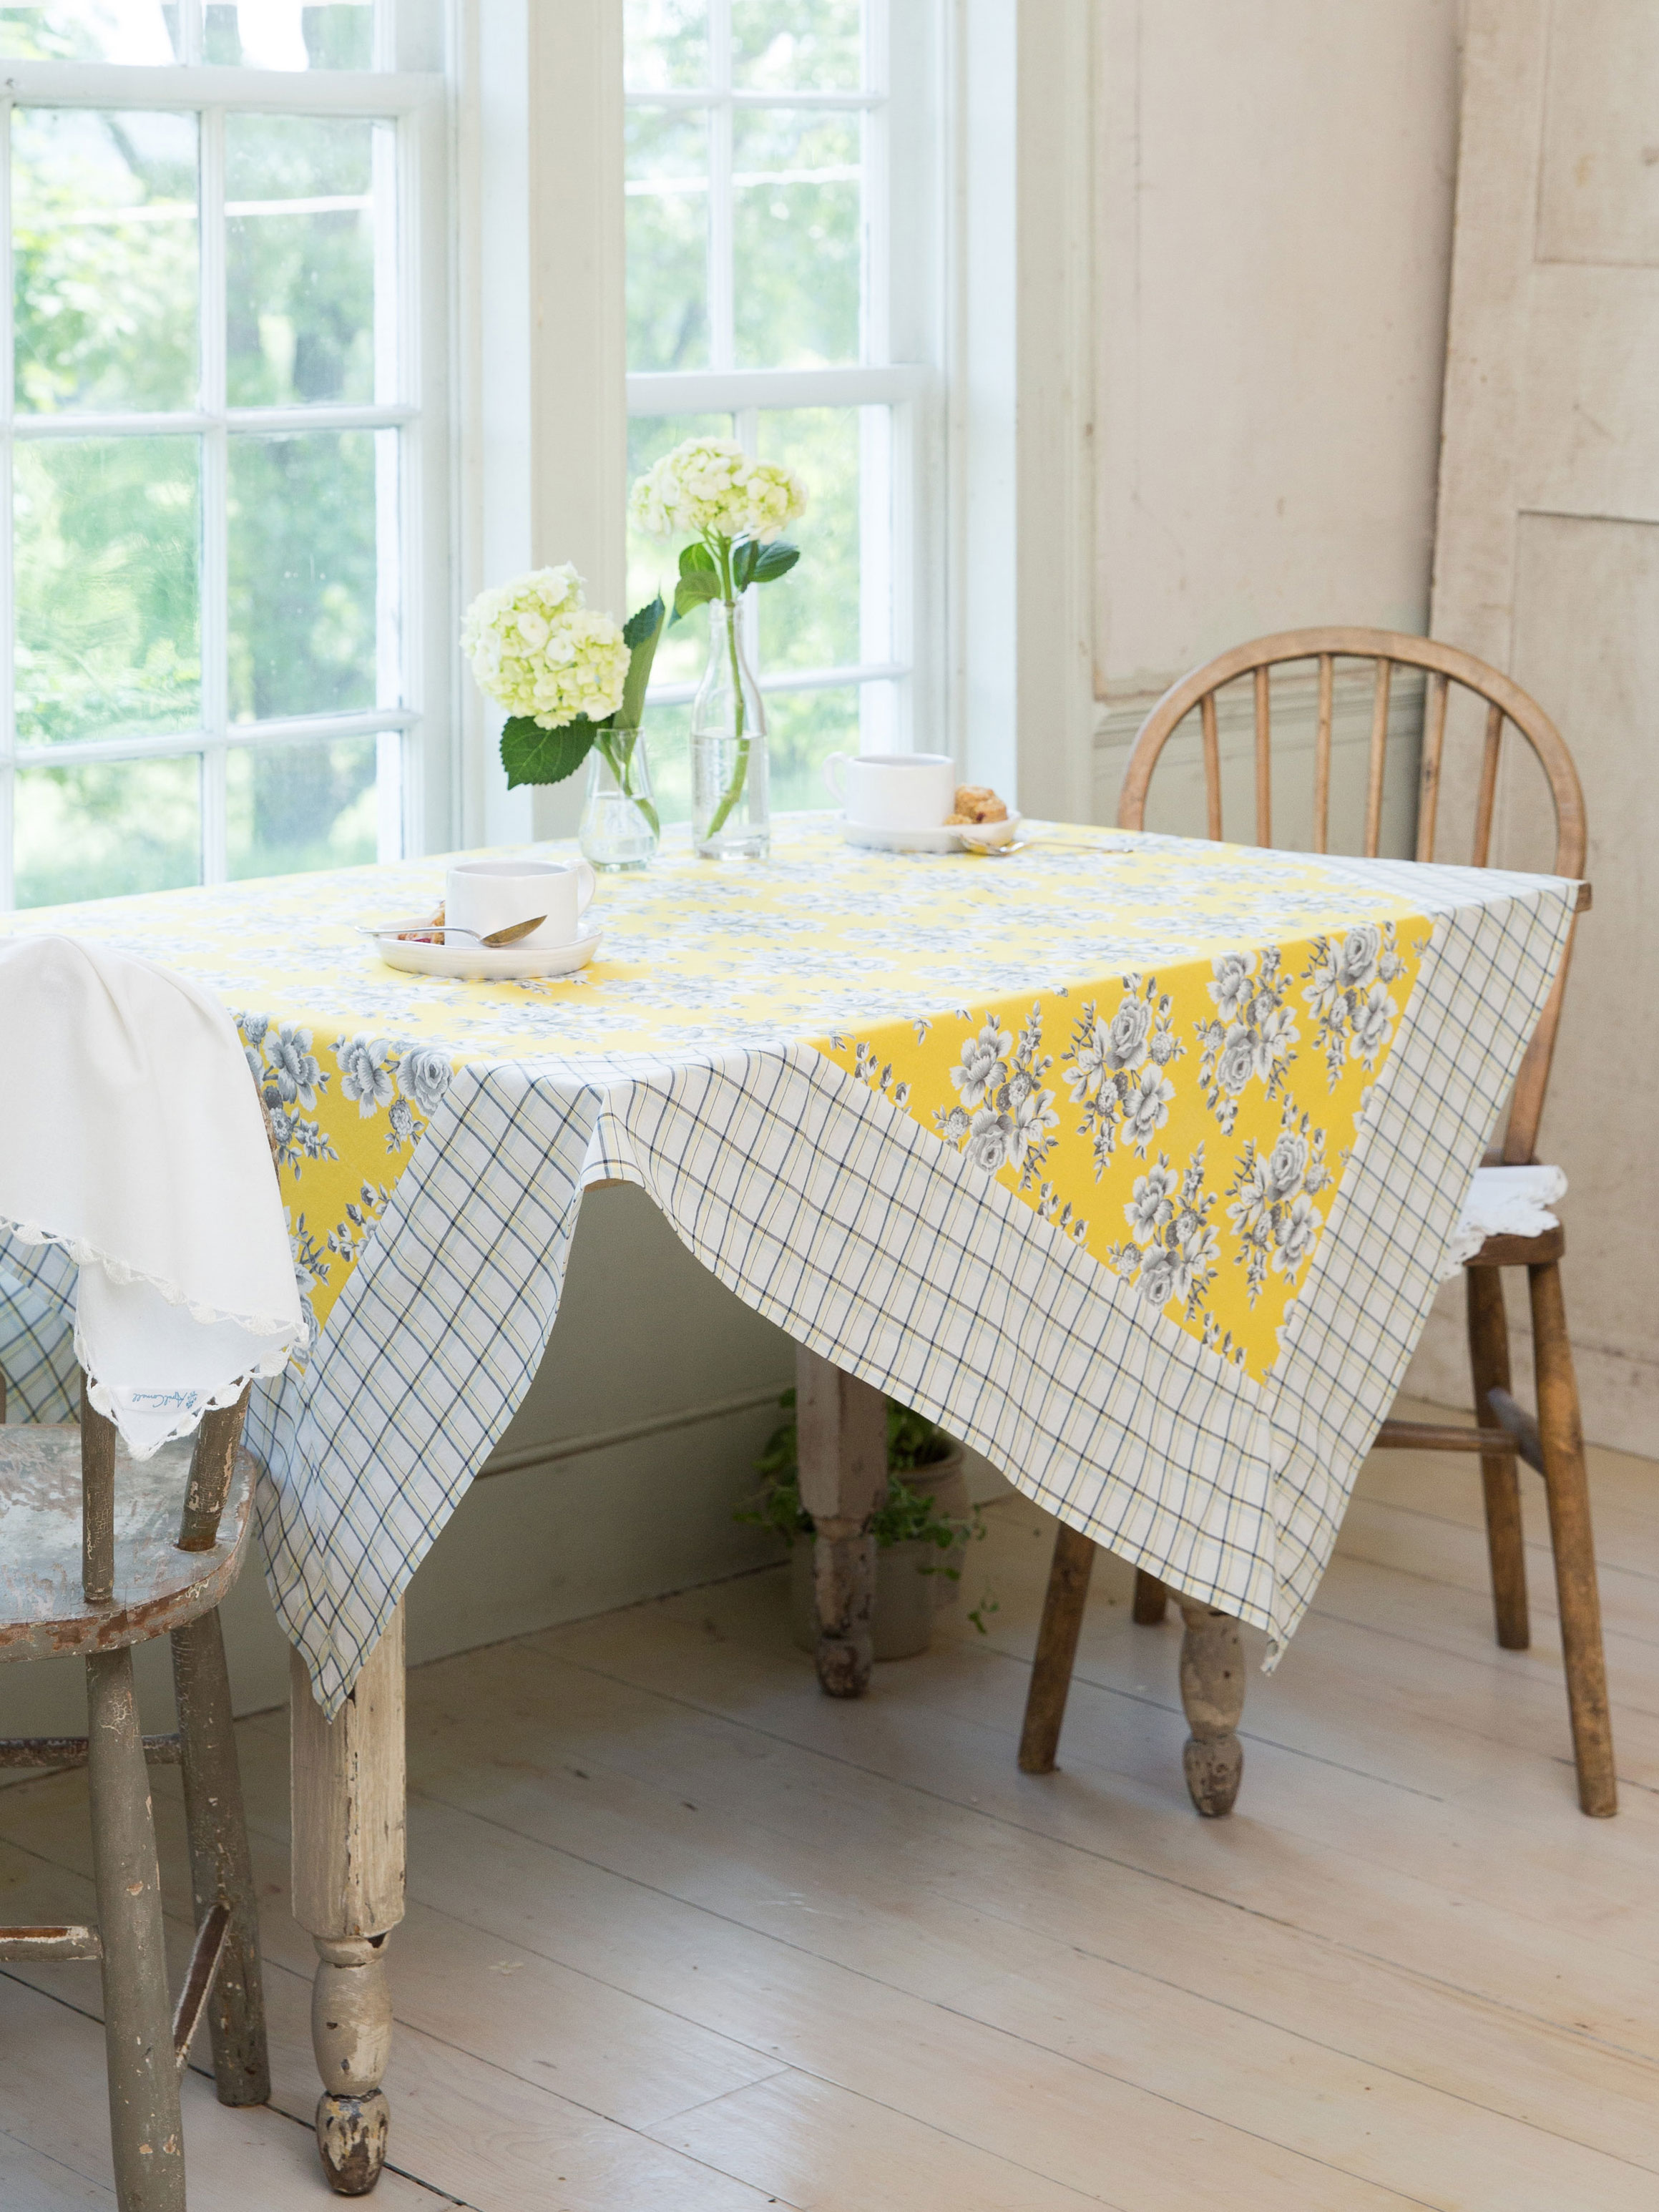 Table Linens & Decor: Free Shipping on orders over $45 at custifara.ga - Your Online Table Linens & Decor Store! 6 or 12 month special financing available. Get 5% in rewards with Club O!